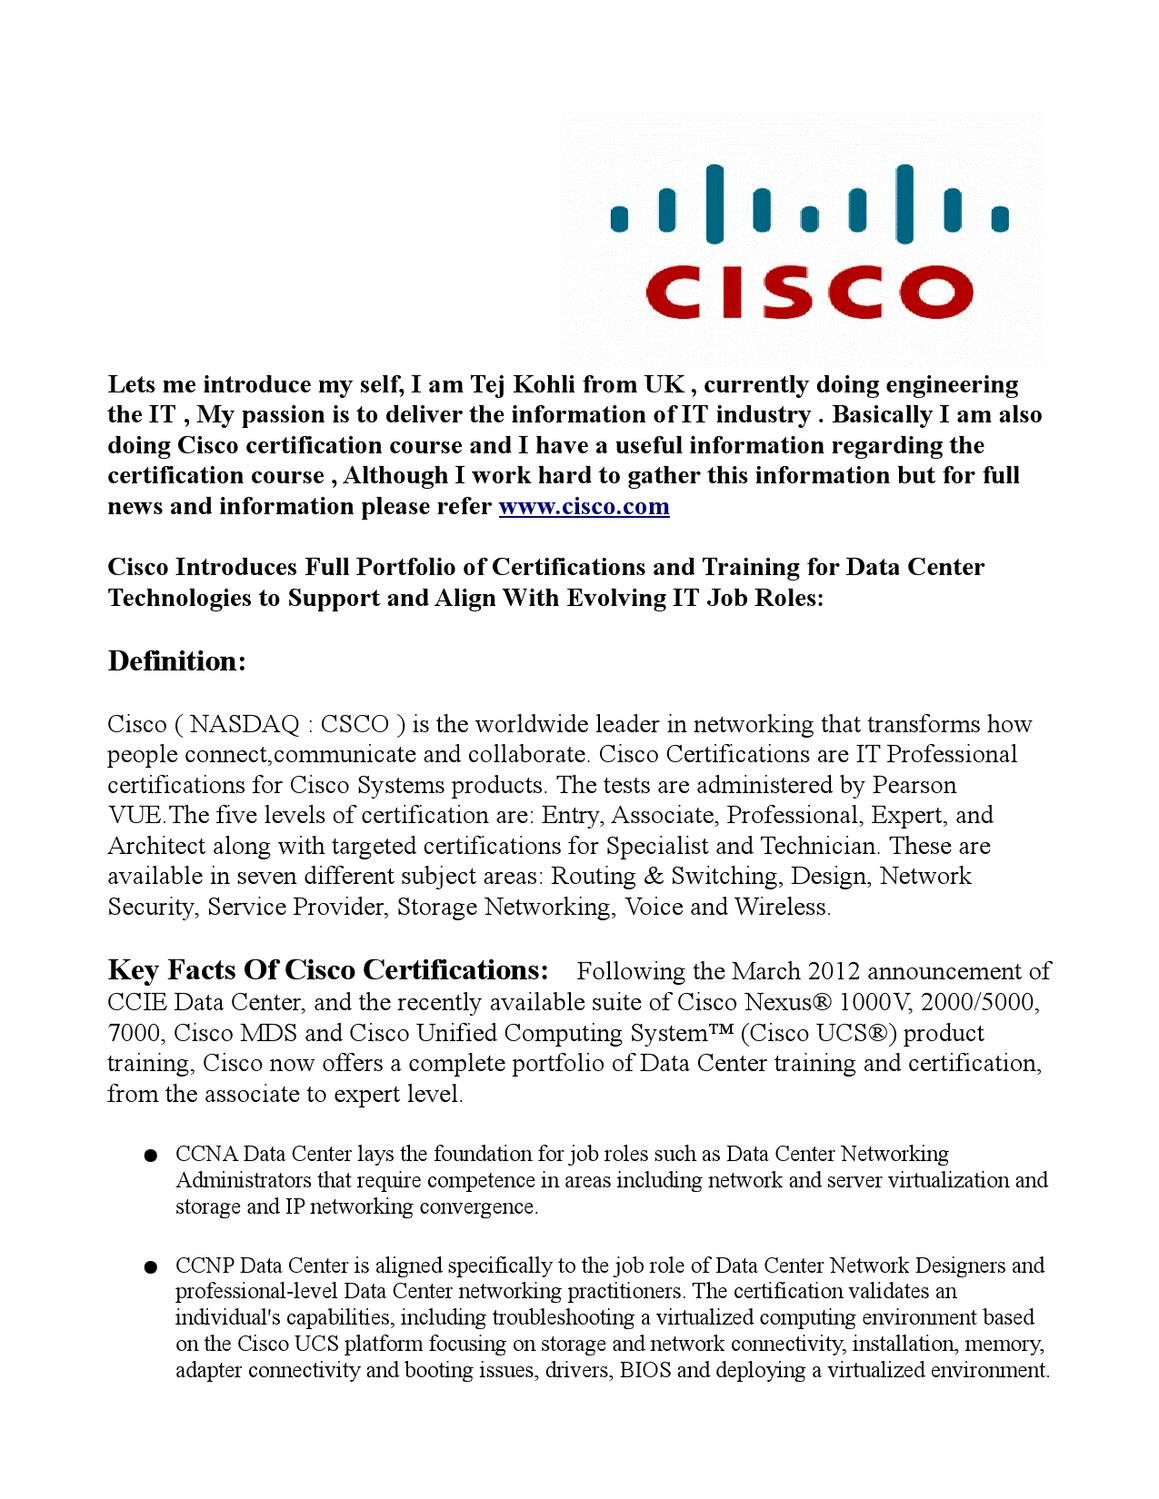 Tej Kohli Cisco Updates Certification Training News by Aney Den - issuu